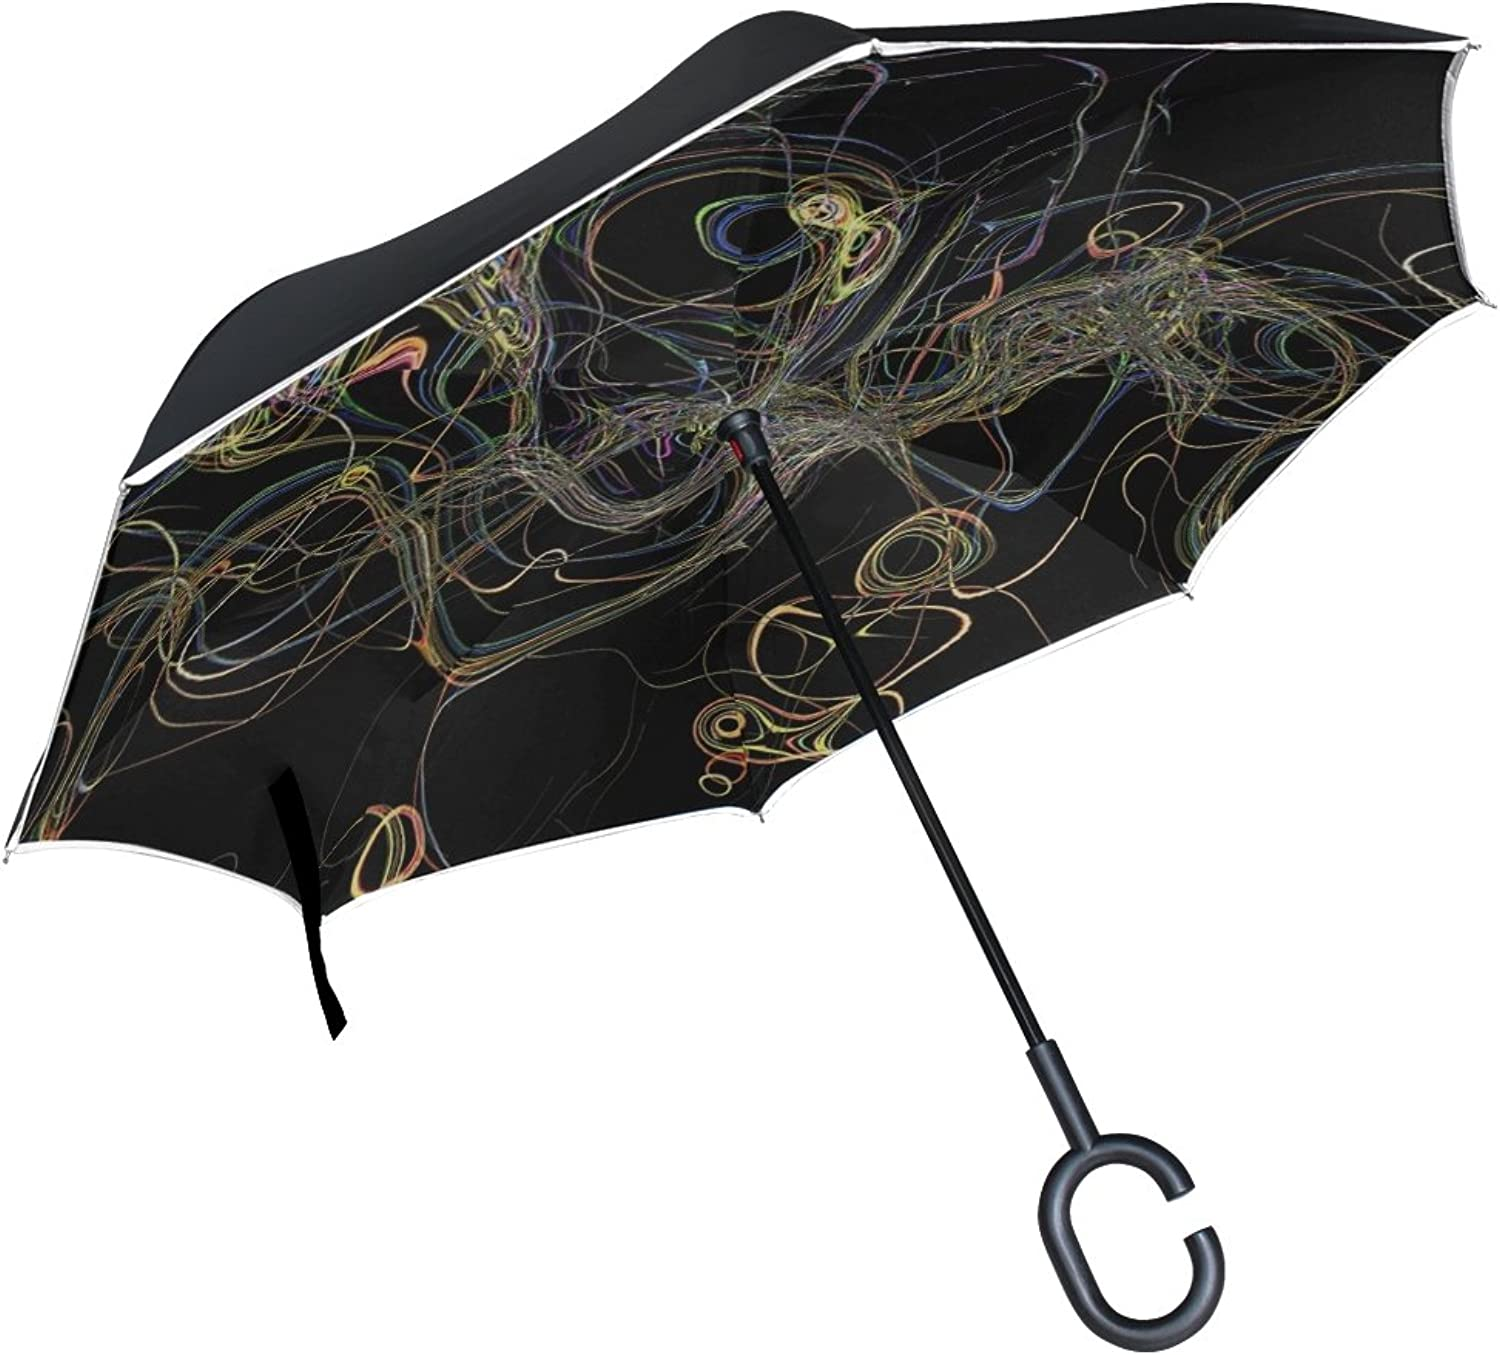 Double Layer Ingreened Tangle Circle Abstract Pattern Movement Umbrellas Reverse Folding Umbrella Windproof Uv Predection Big Straight Umbrella for Car Rain Outdoor with CShaped Handle